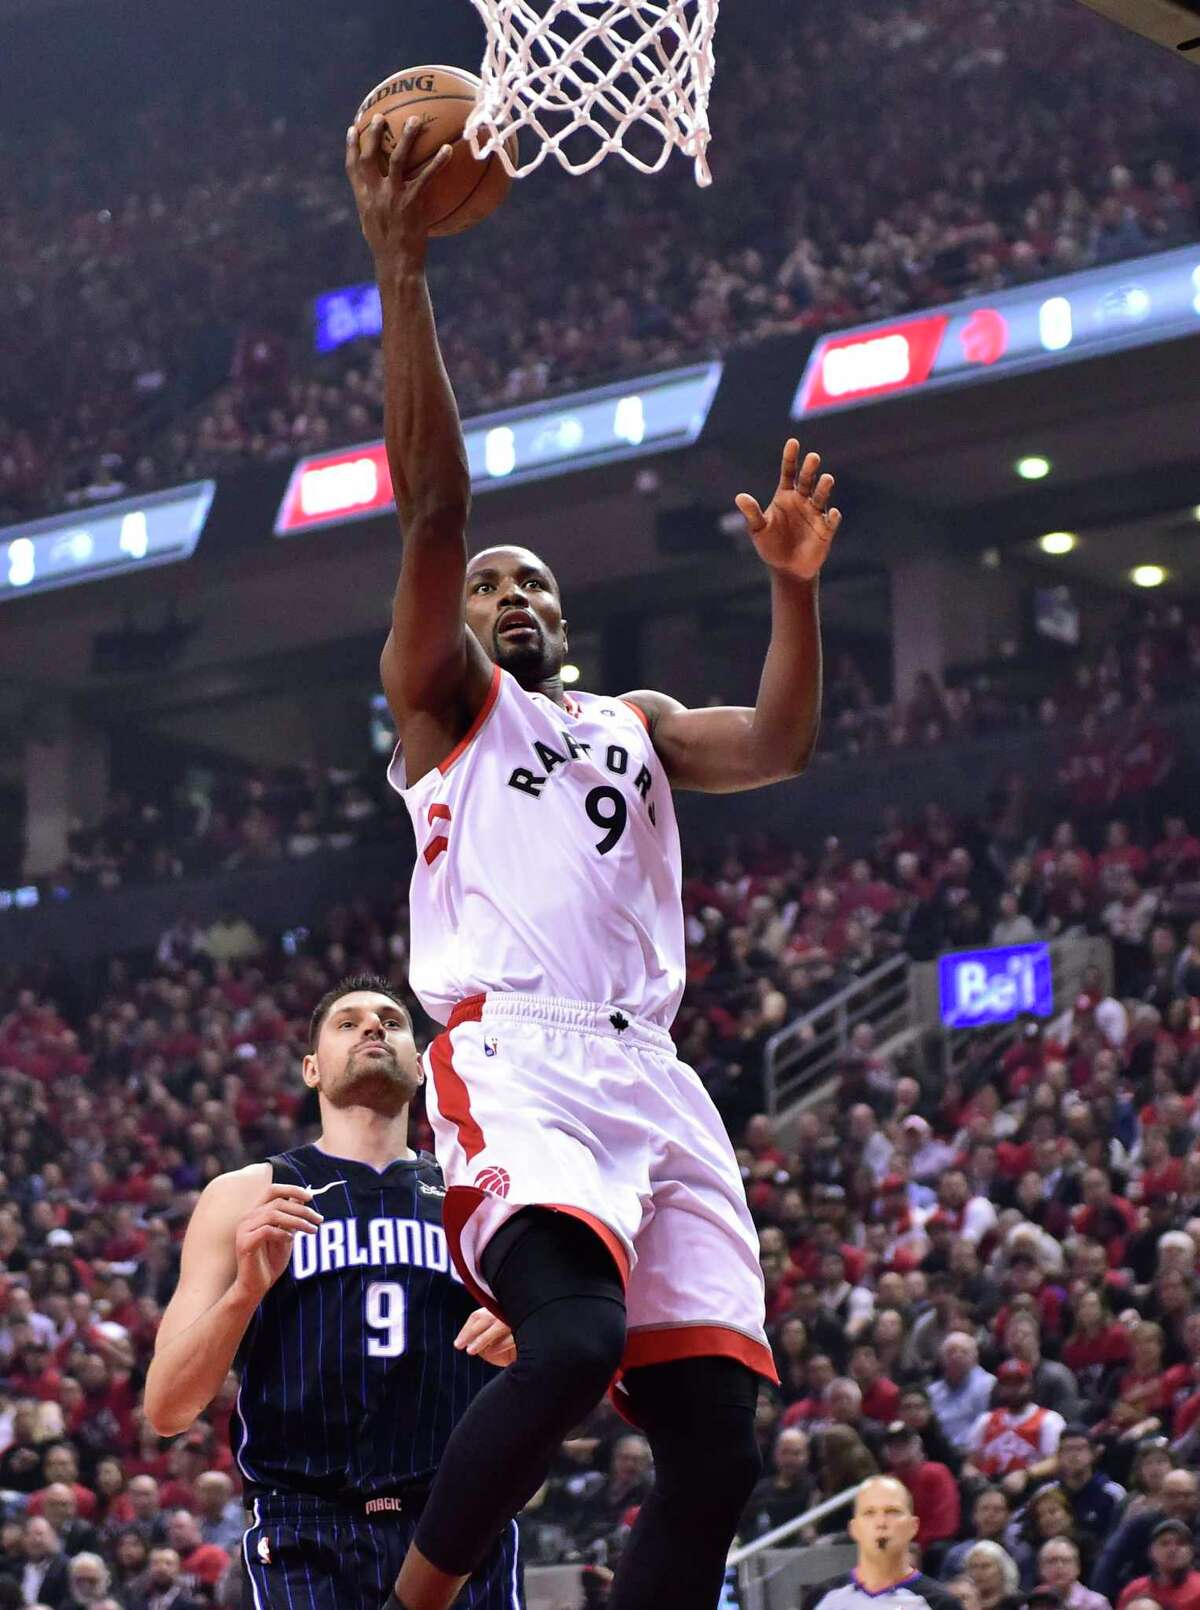 Toronto Raptors' Serge Ibaka scores as Orlando Magic centre Nikola Vucevic (9) watches during the first half of Game 2 of an NBA basketball first-round playoff series Tuesday, April 16, 2019, in Toronto. (Frank Gunn/The Canadian Press via AP)